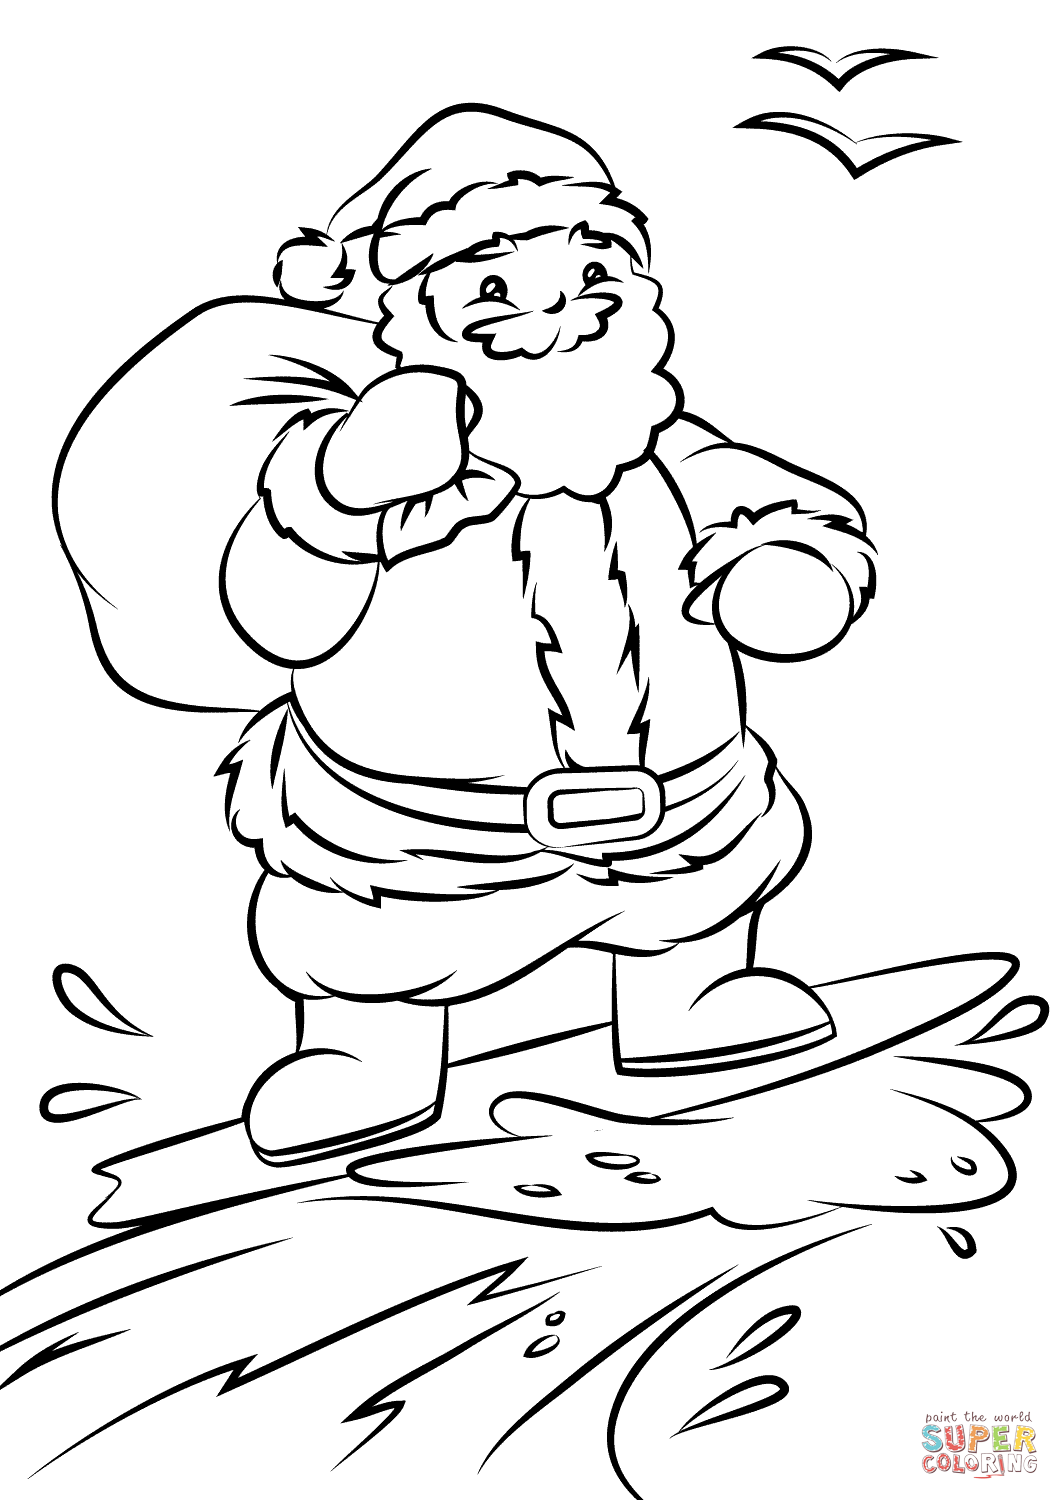 Santa To Coloring With Surfing Colouring Google Search Christmas STAMPS